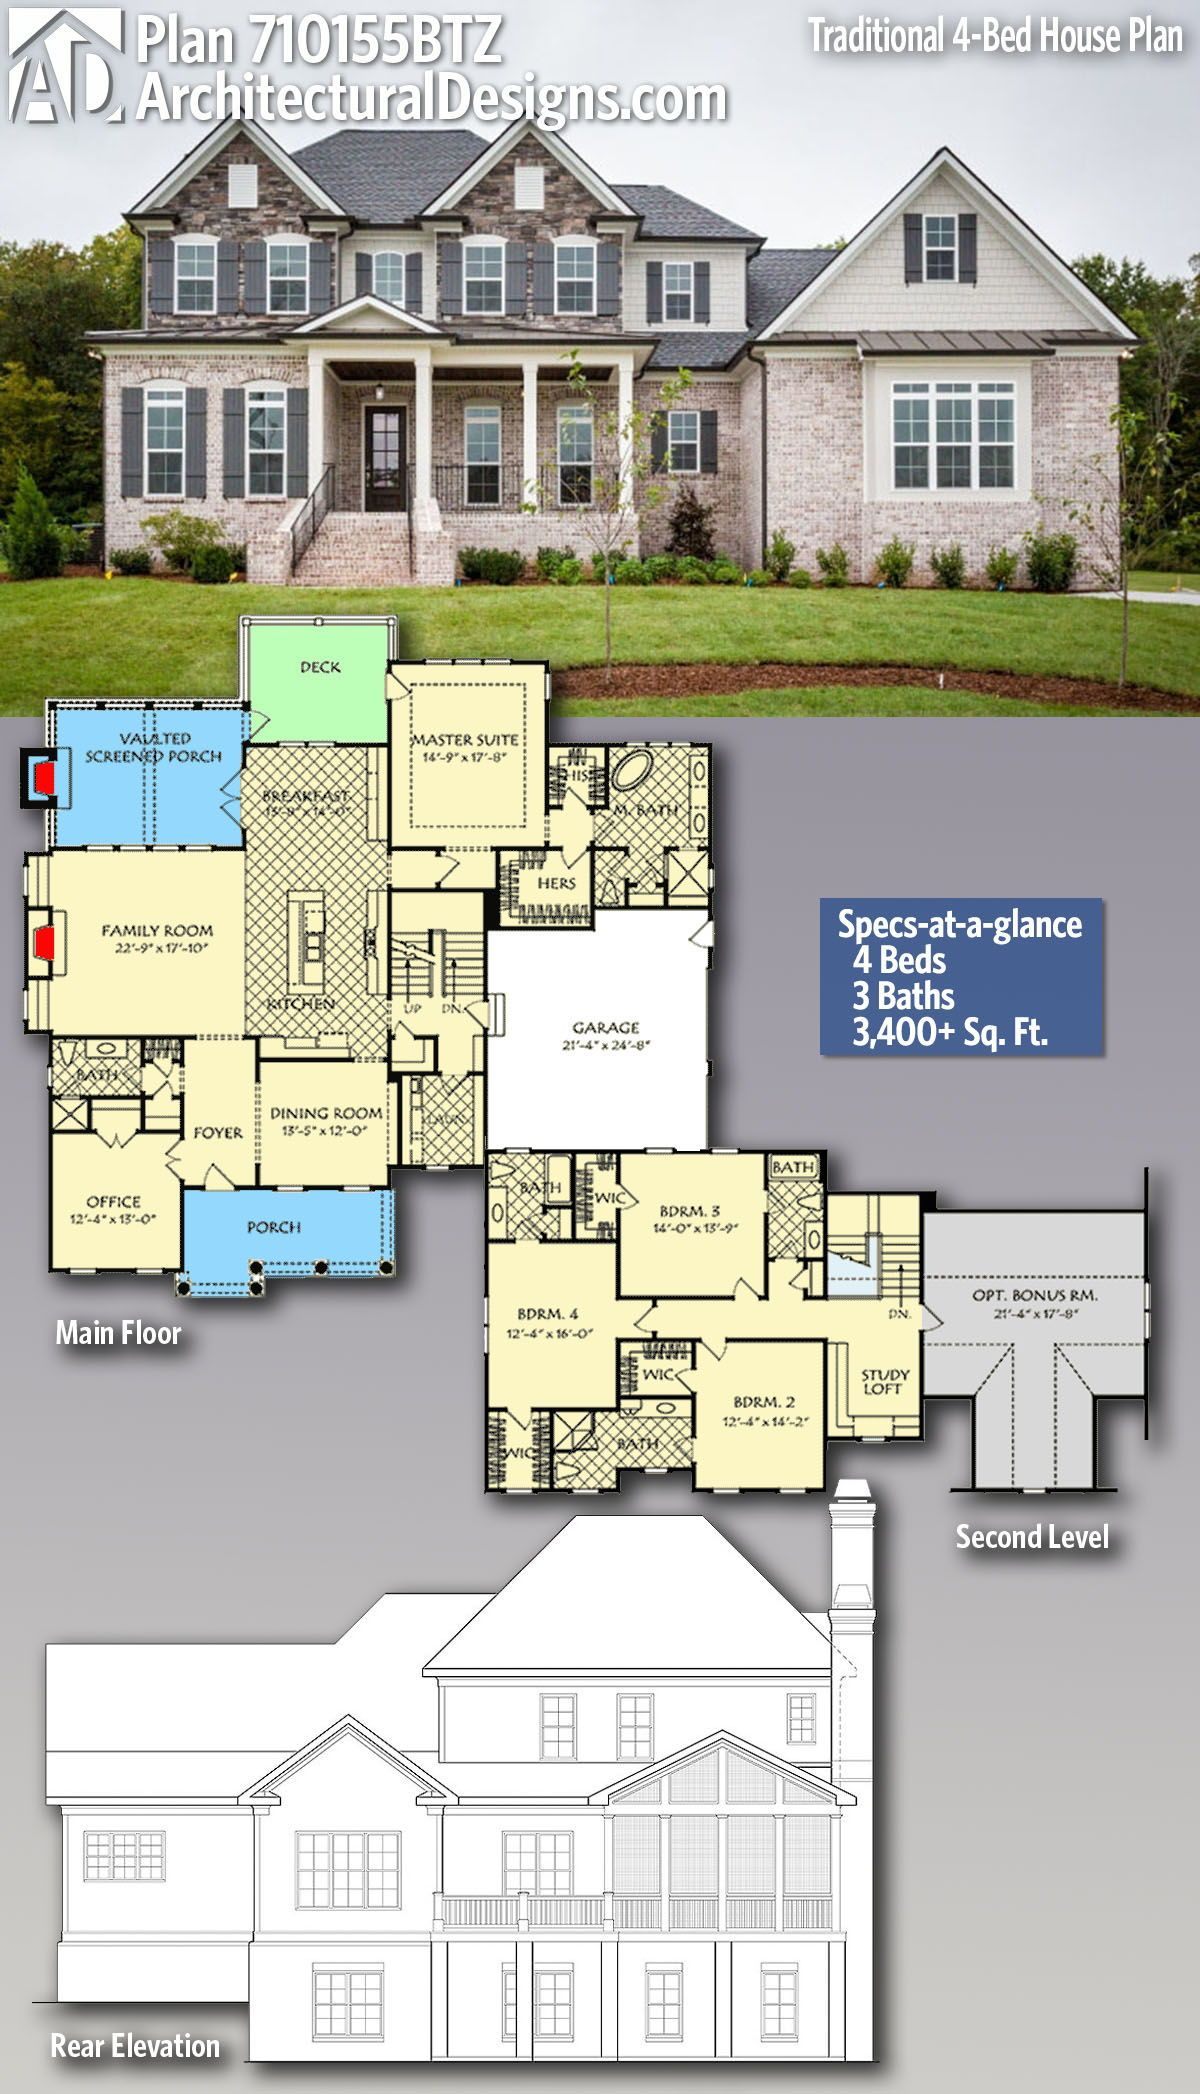 Plan 710155btz Traditional 4 Bed House Plan With Brick Exterior And Shingle Accents Architectural Design House Plans House Blueprints House Plans